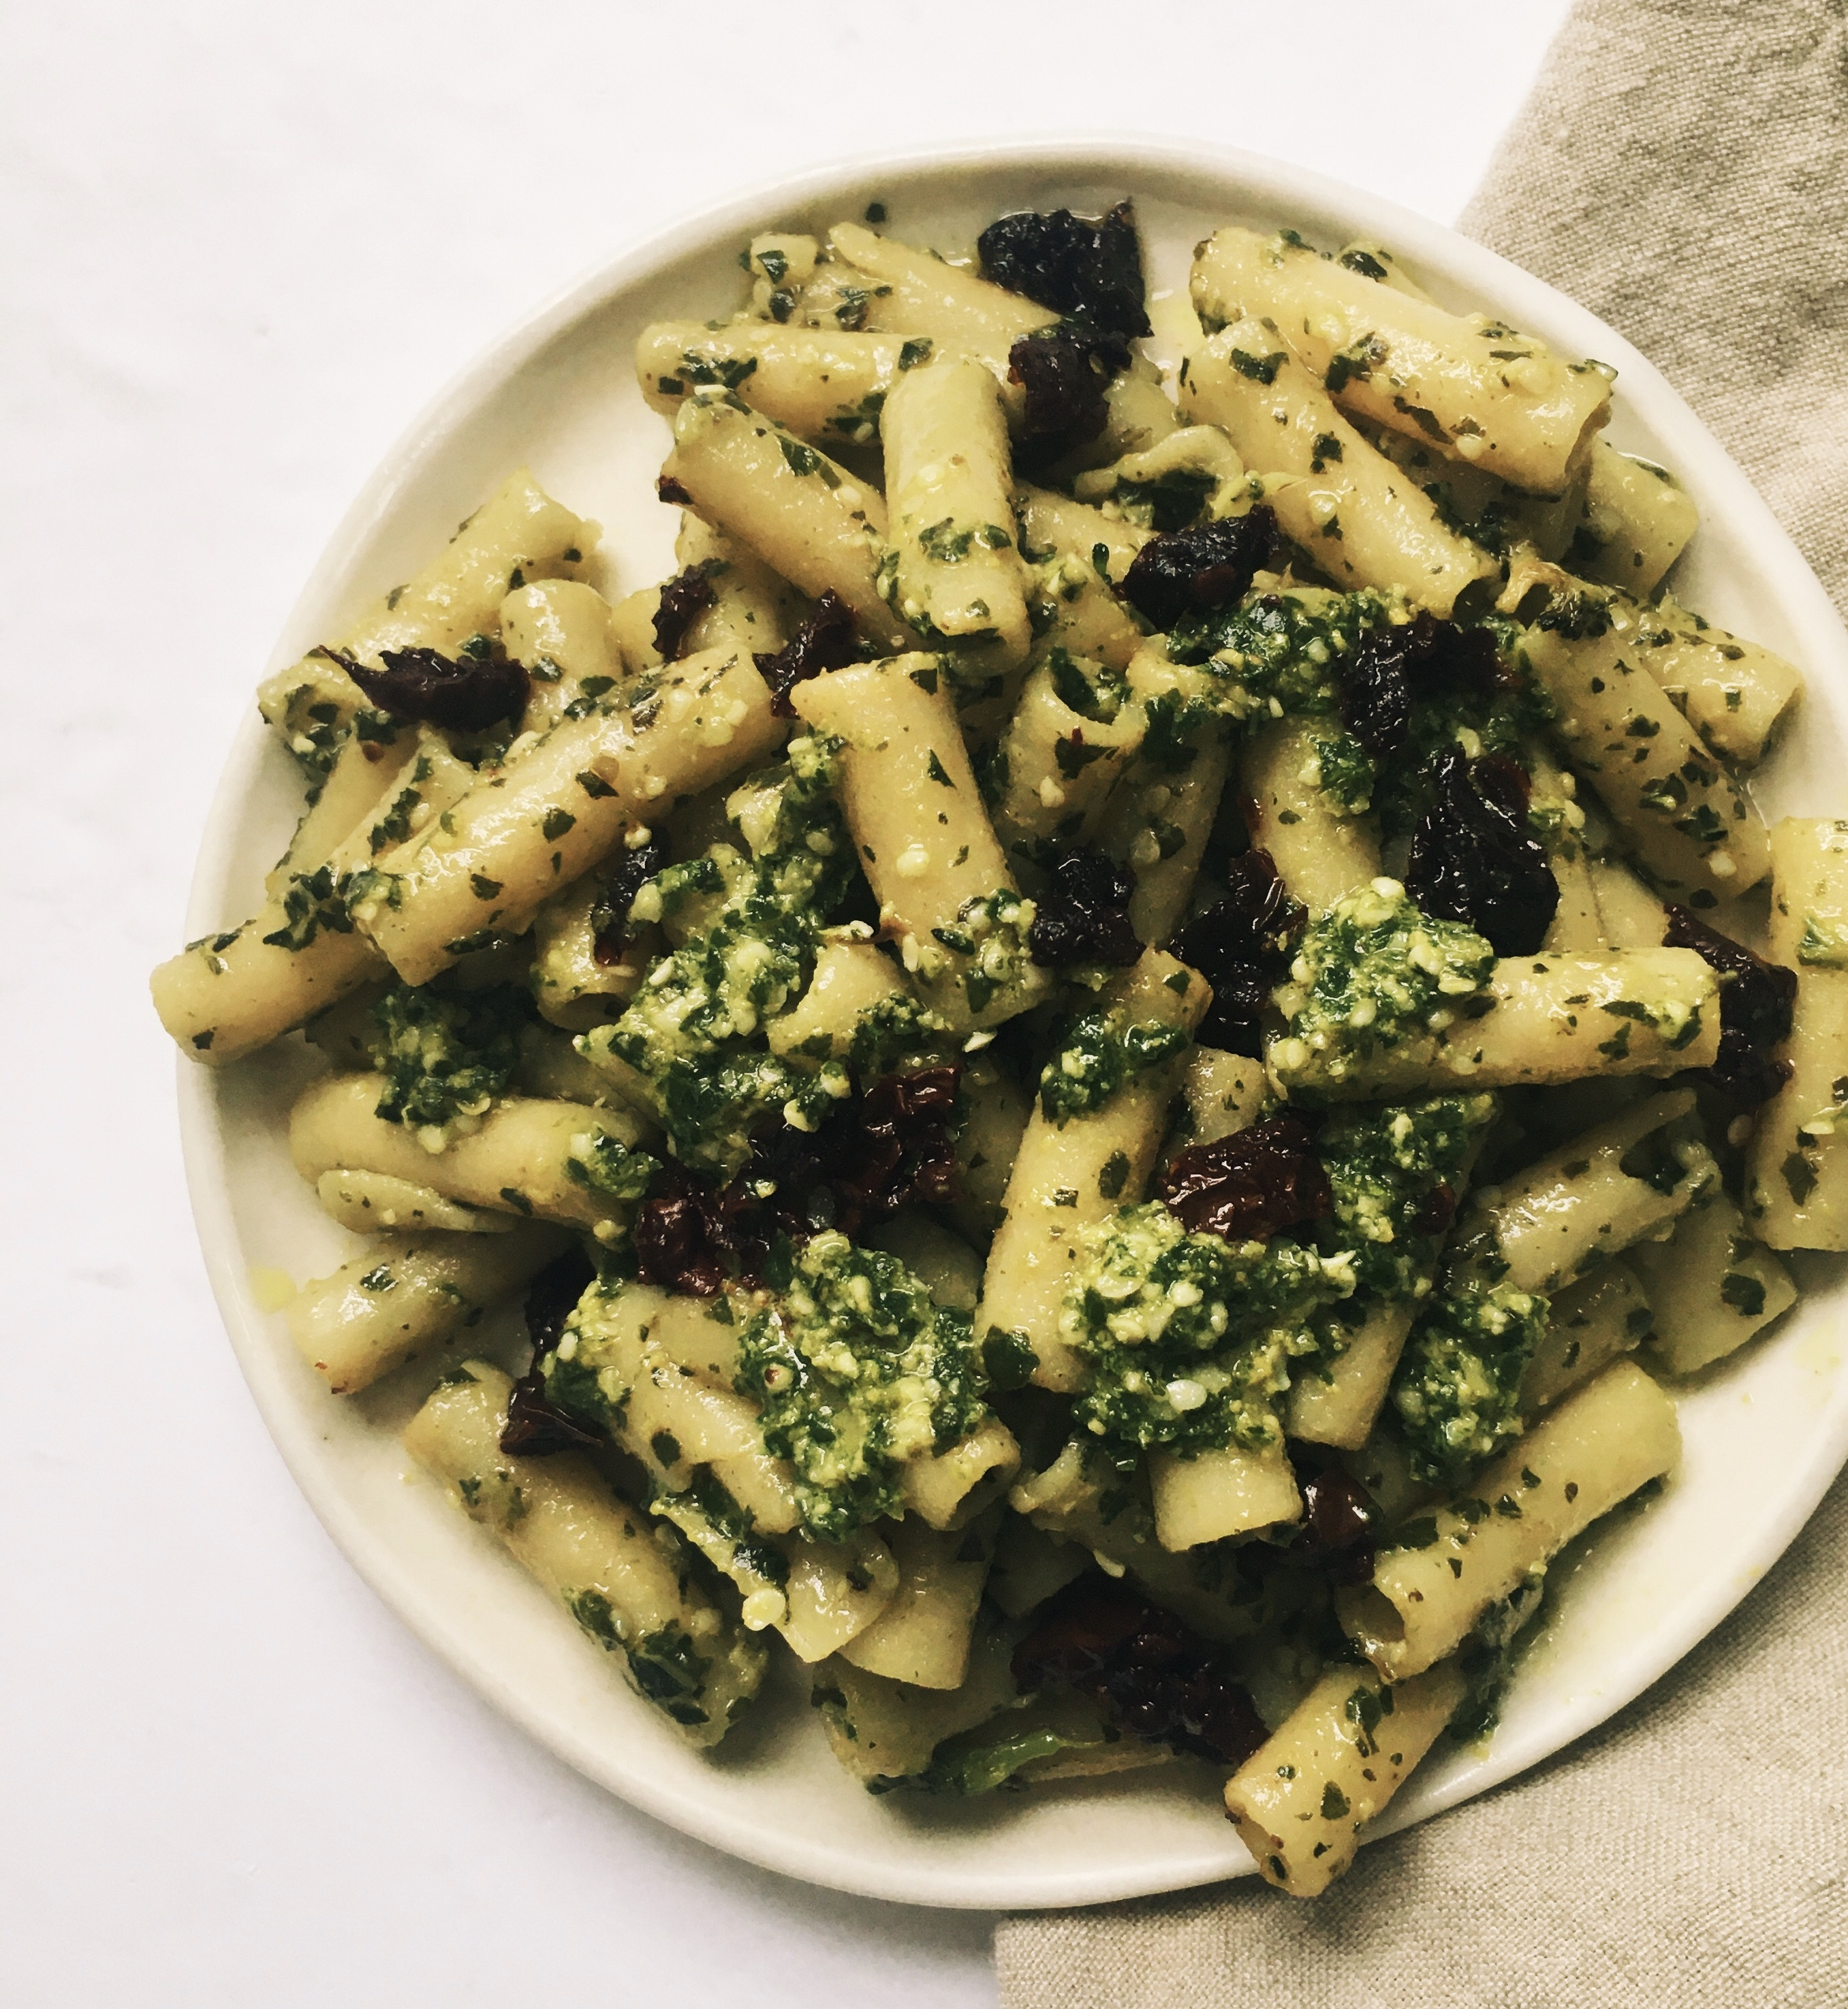 Dairy free pesto is easy to make with nutritional yeast.